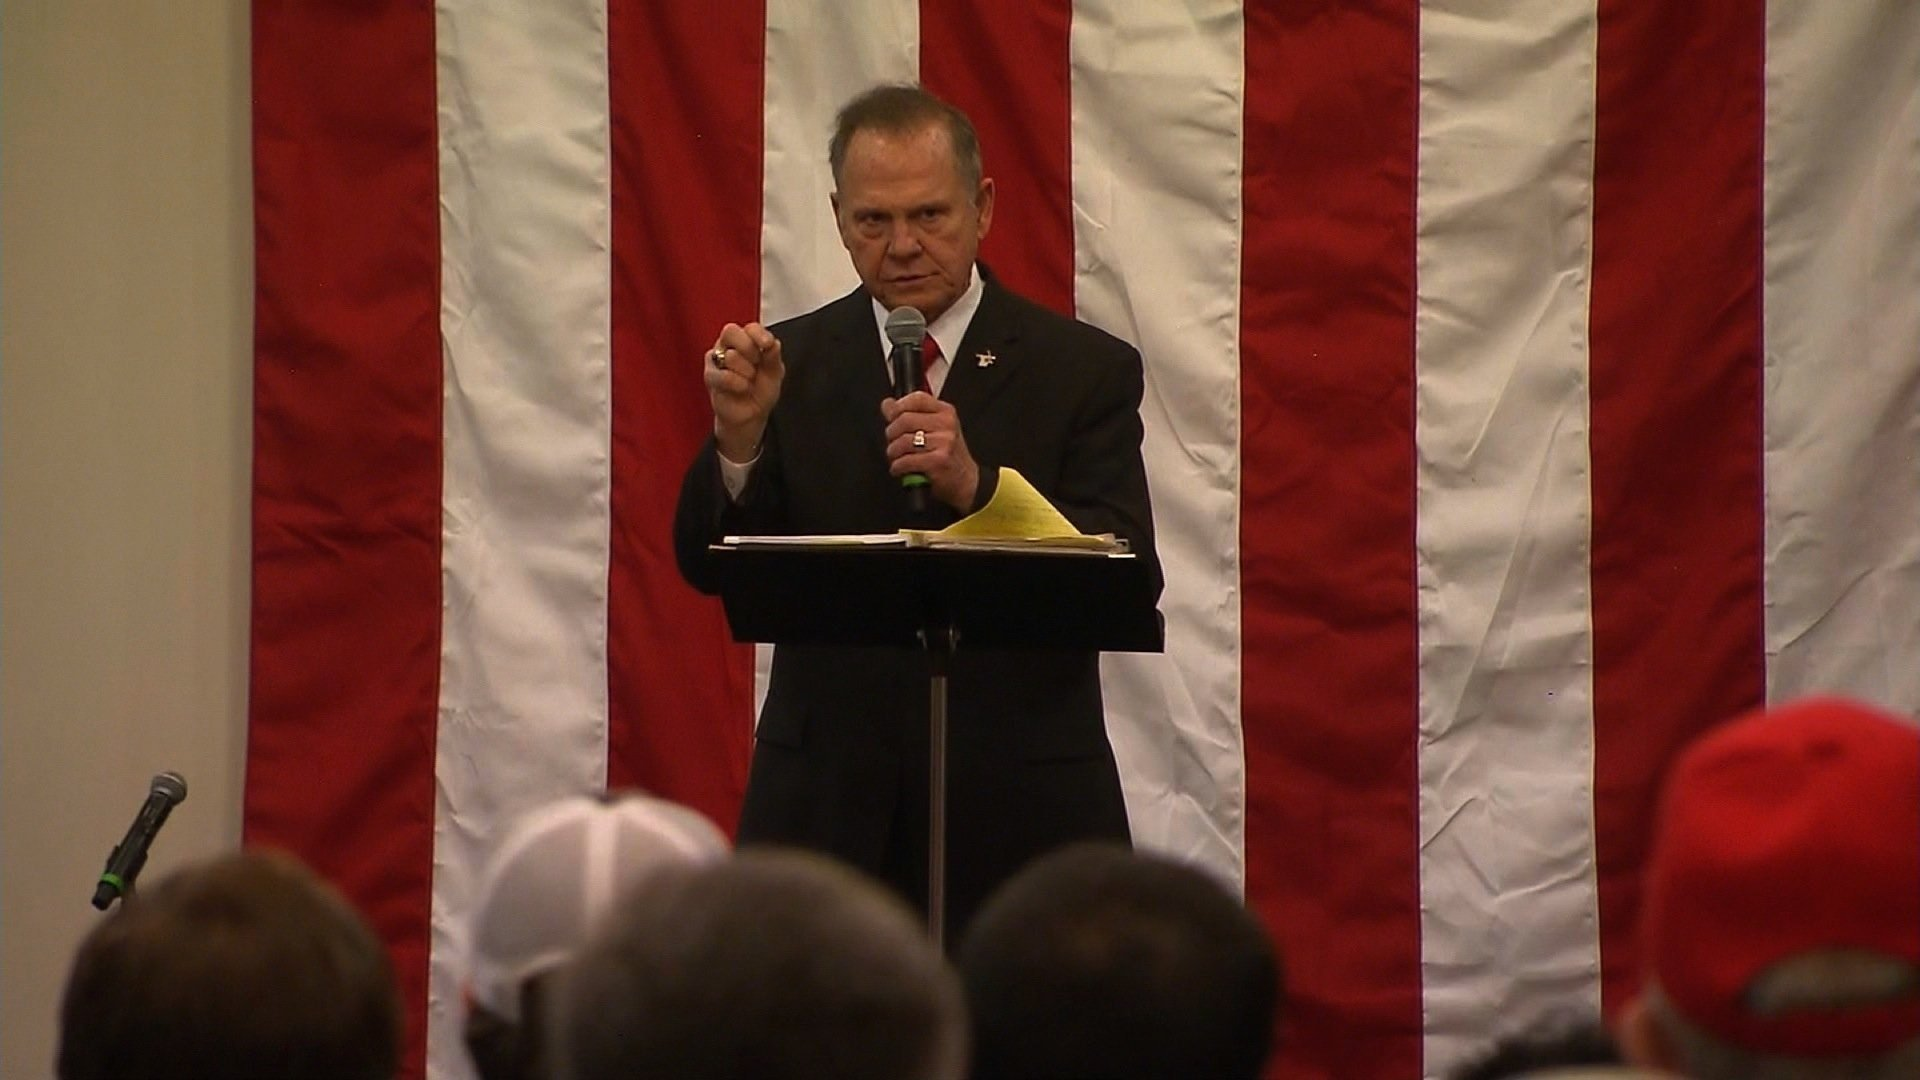 Republican Roy Moore cast the sexual allegations he faces as an outside effort to tank his Senate candidacy Monday night at his final rally before Tuesday's special election. CNN photo.